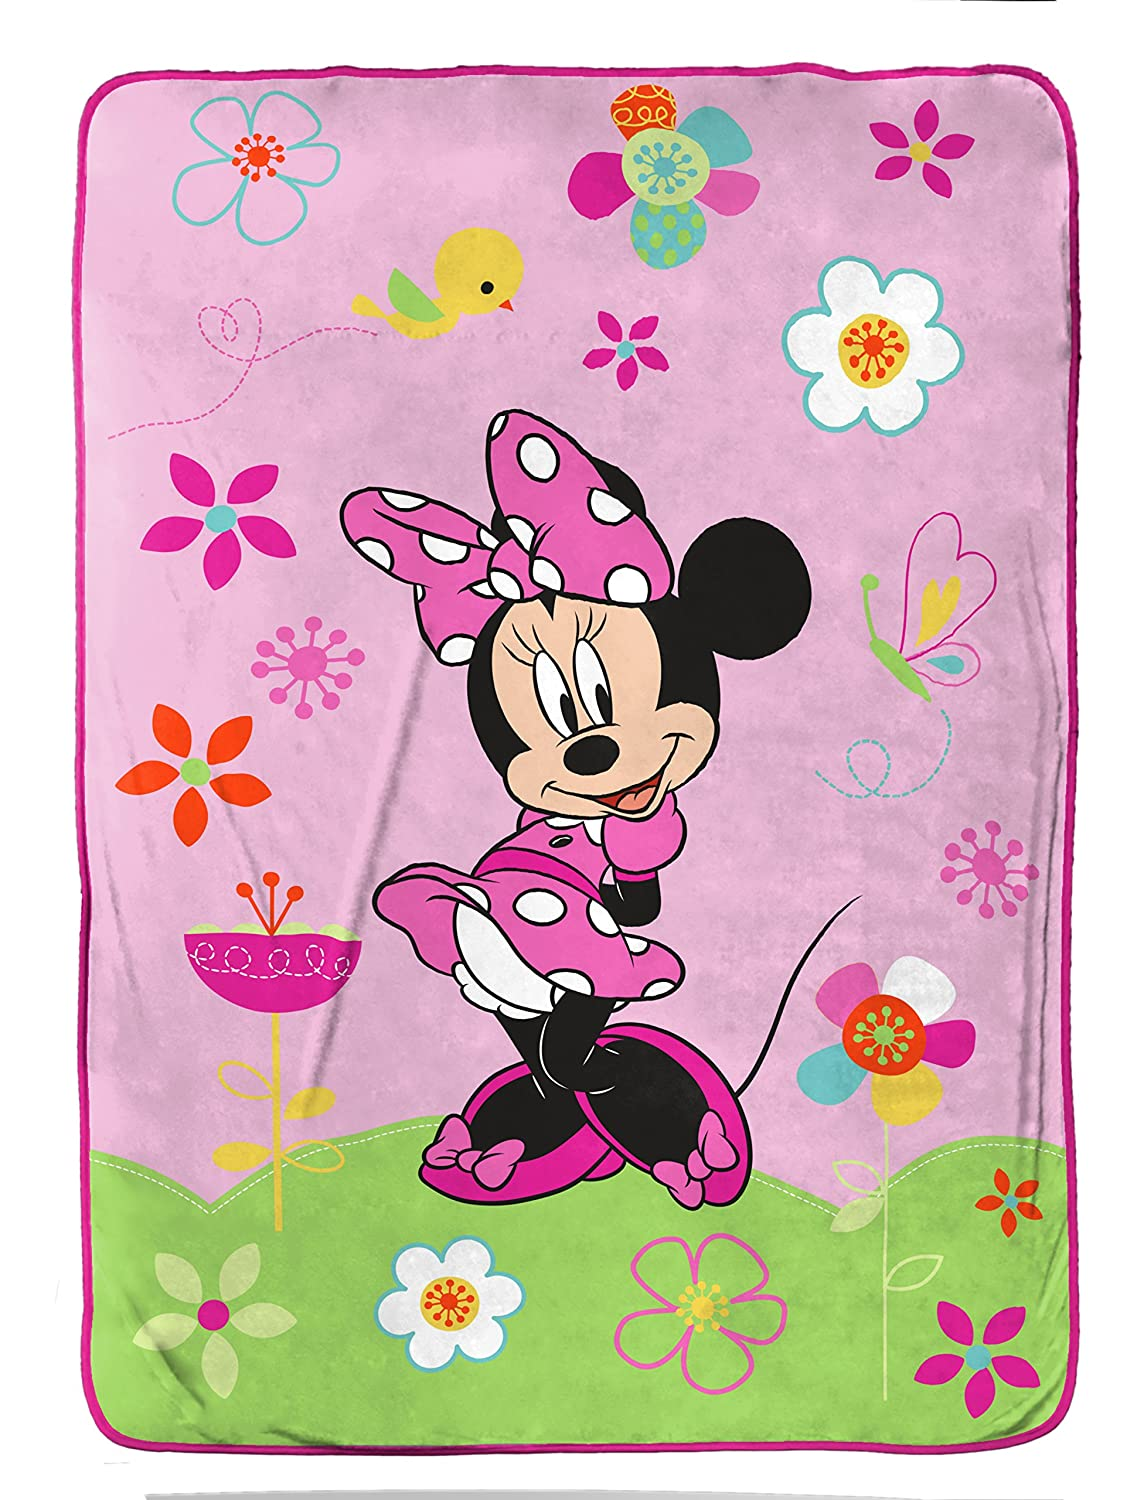 Disney Minnie Mouse Bowtique 'Garden Party' Fleece 62 x 90 Twin Blanket Jay Franco and Sons Inc. JF24457TRUCD